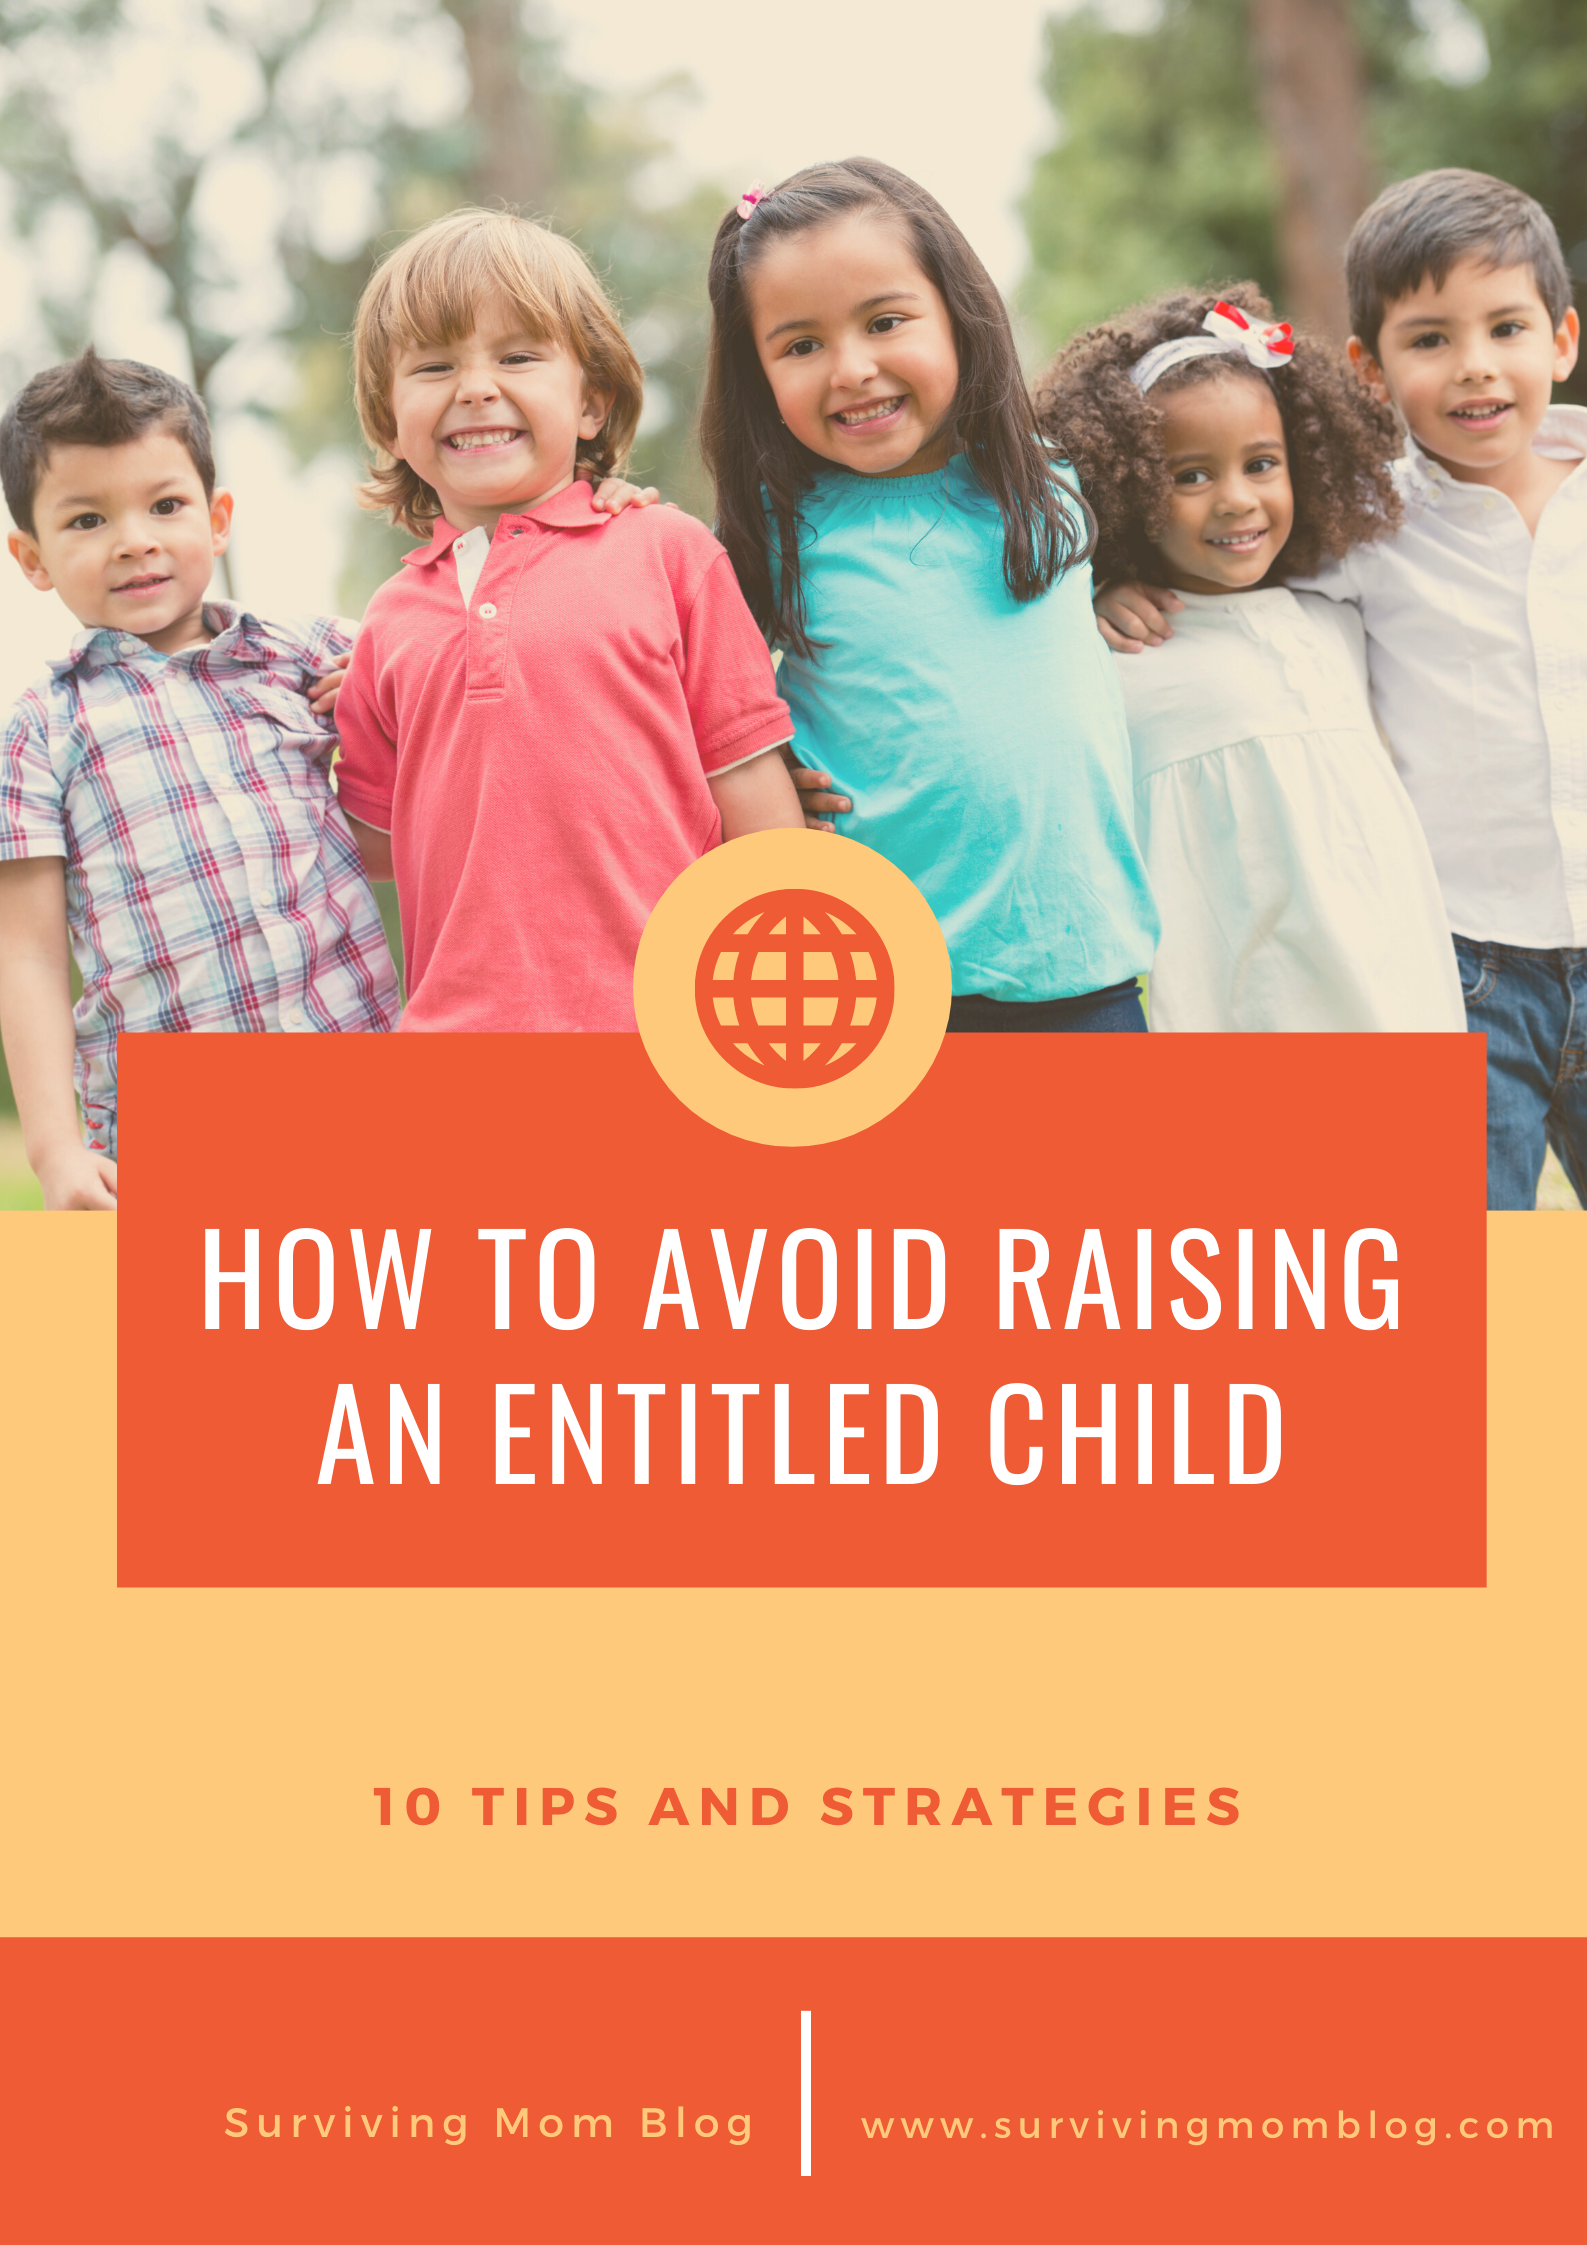 How To Avoid Raising an Entitled Child: 10 Tips and Strategies